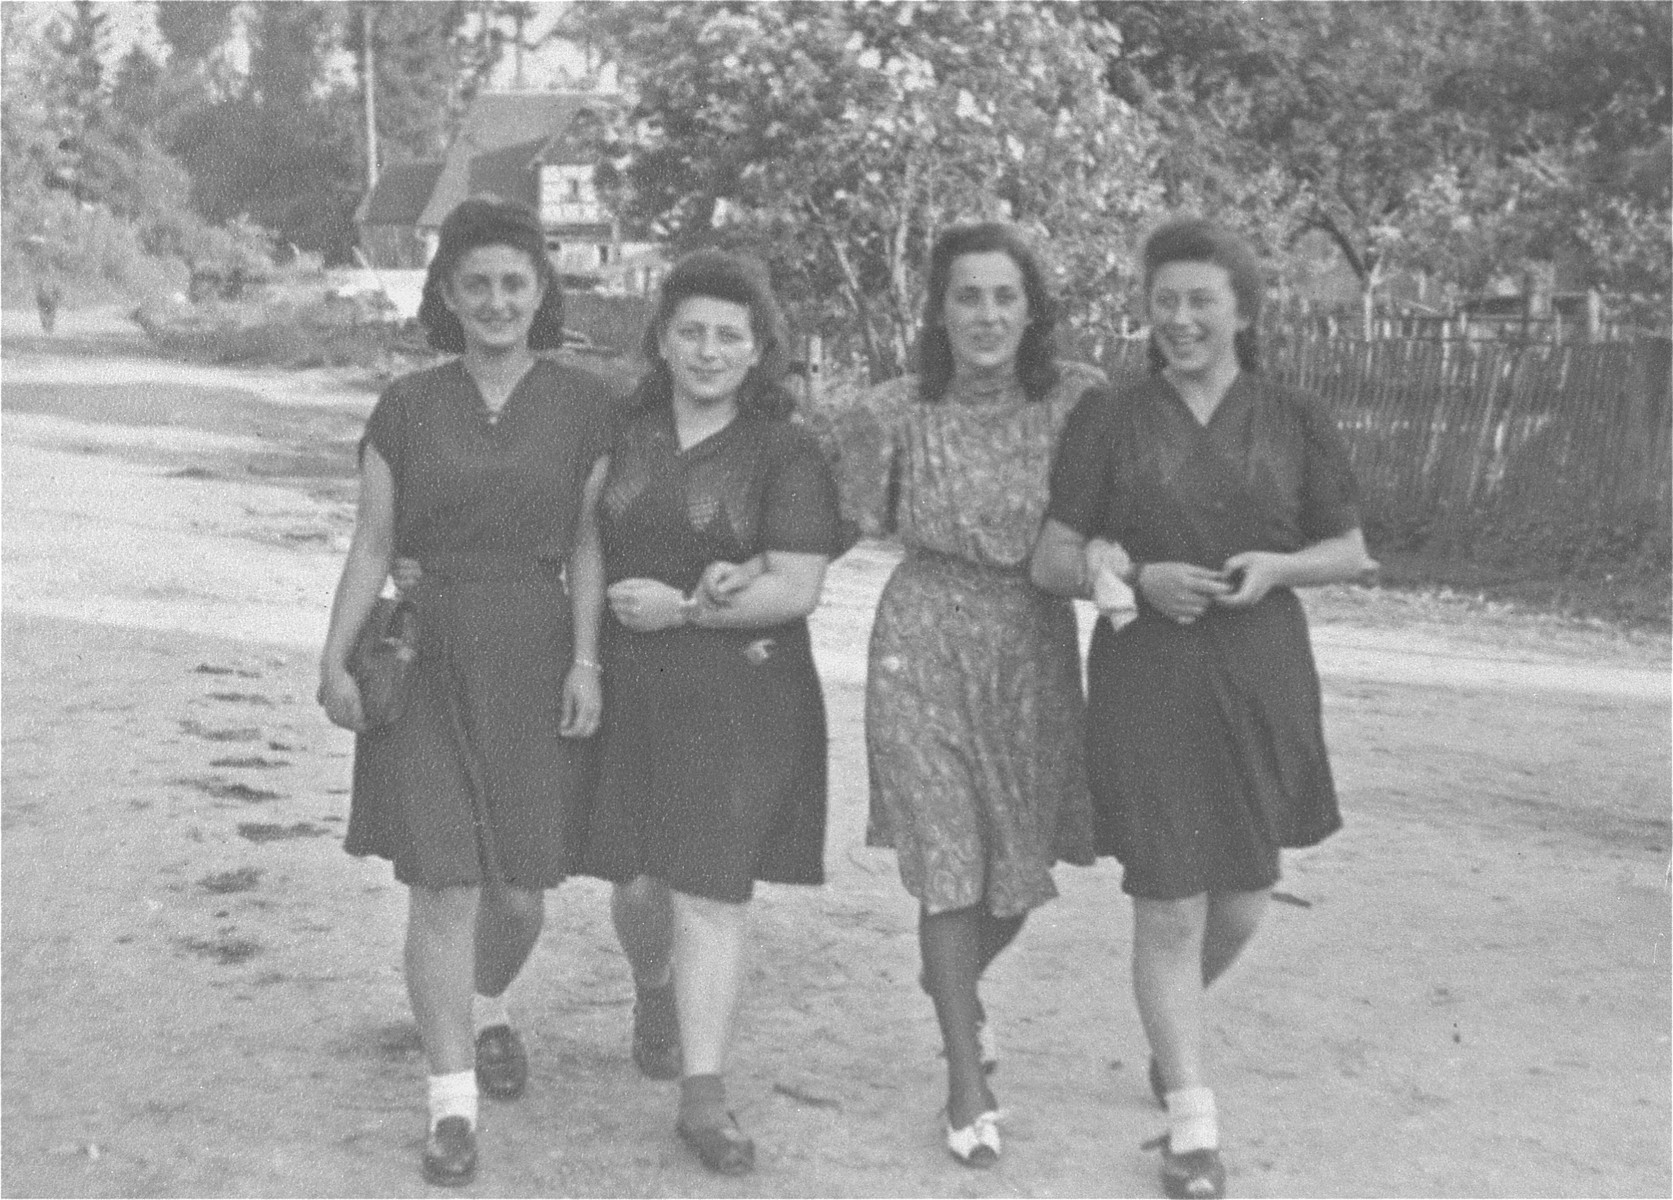 Four young Jewish women who were recently liberated from the Schatzlar labor camp, walk arm-in-arm along a road.  Pictured from left to right are: unknown, Herscovicz (from Sosnowiec), Gusta Fiszgrund (from Crzanow), and Pola Herscovicz (from Sosnowiec).